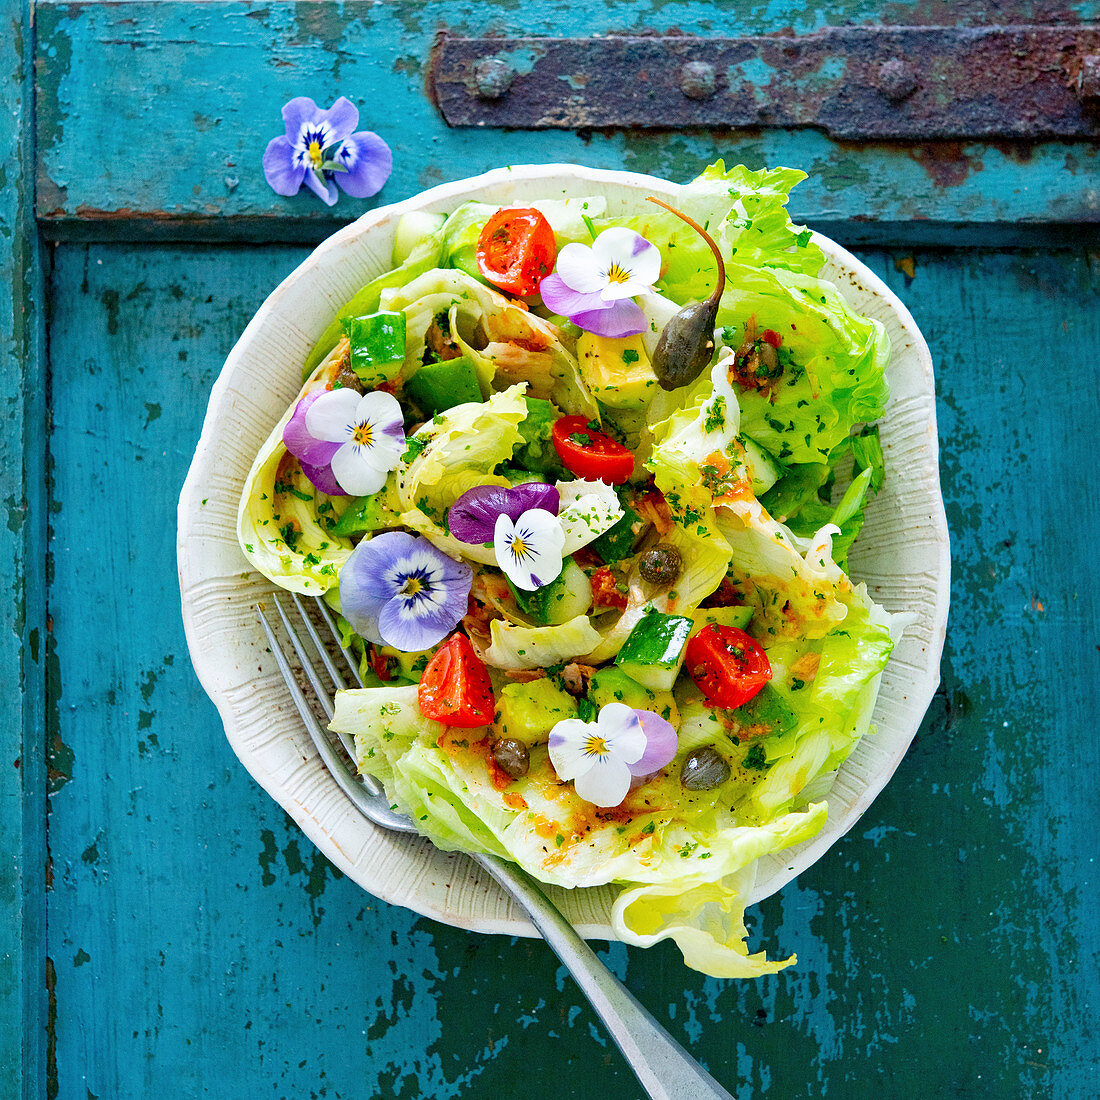 A mixed leaf salad with tomatoes, capers and flowers